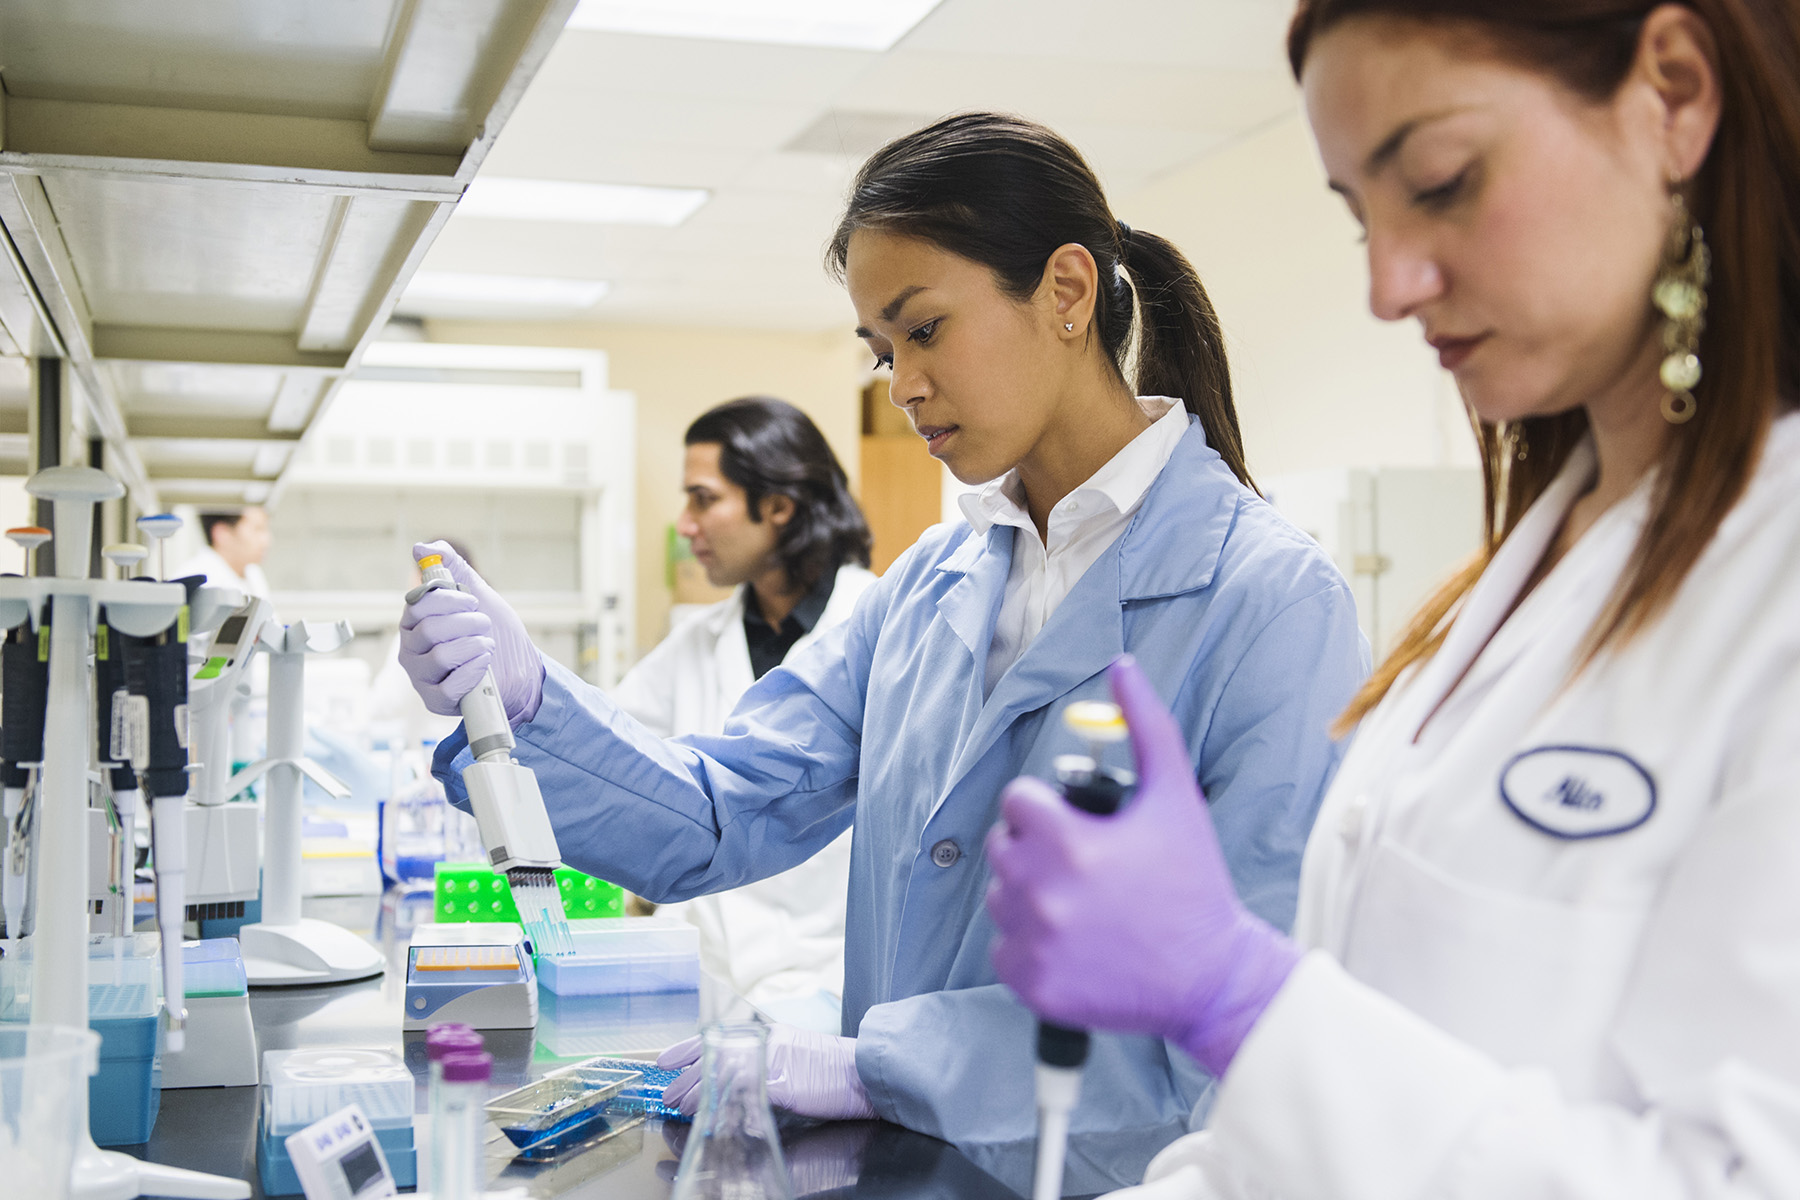 Female scientists in the lab.